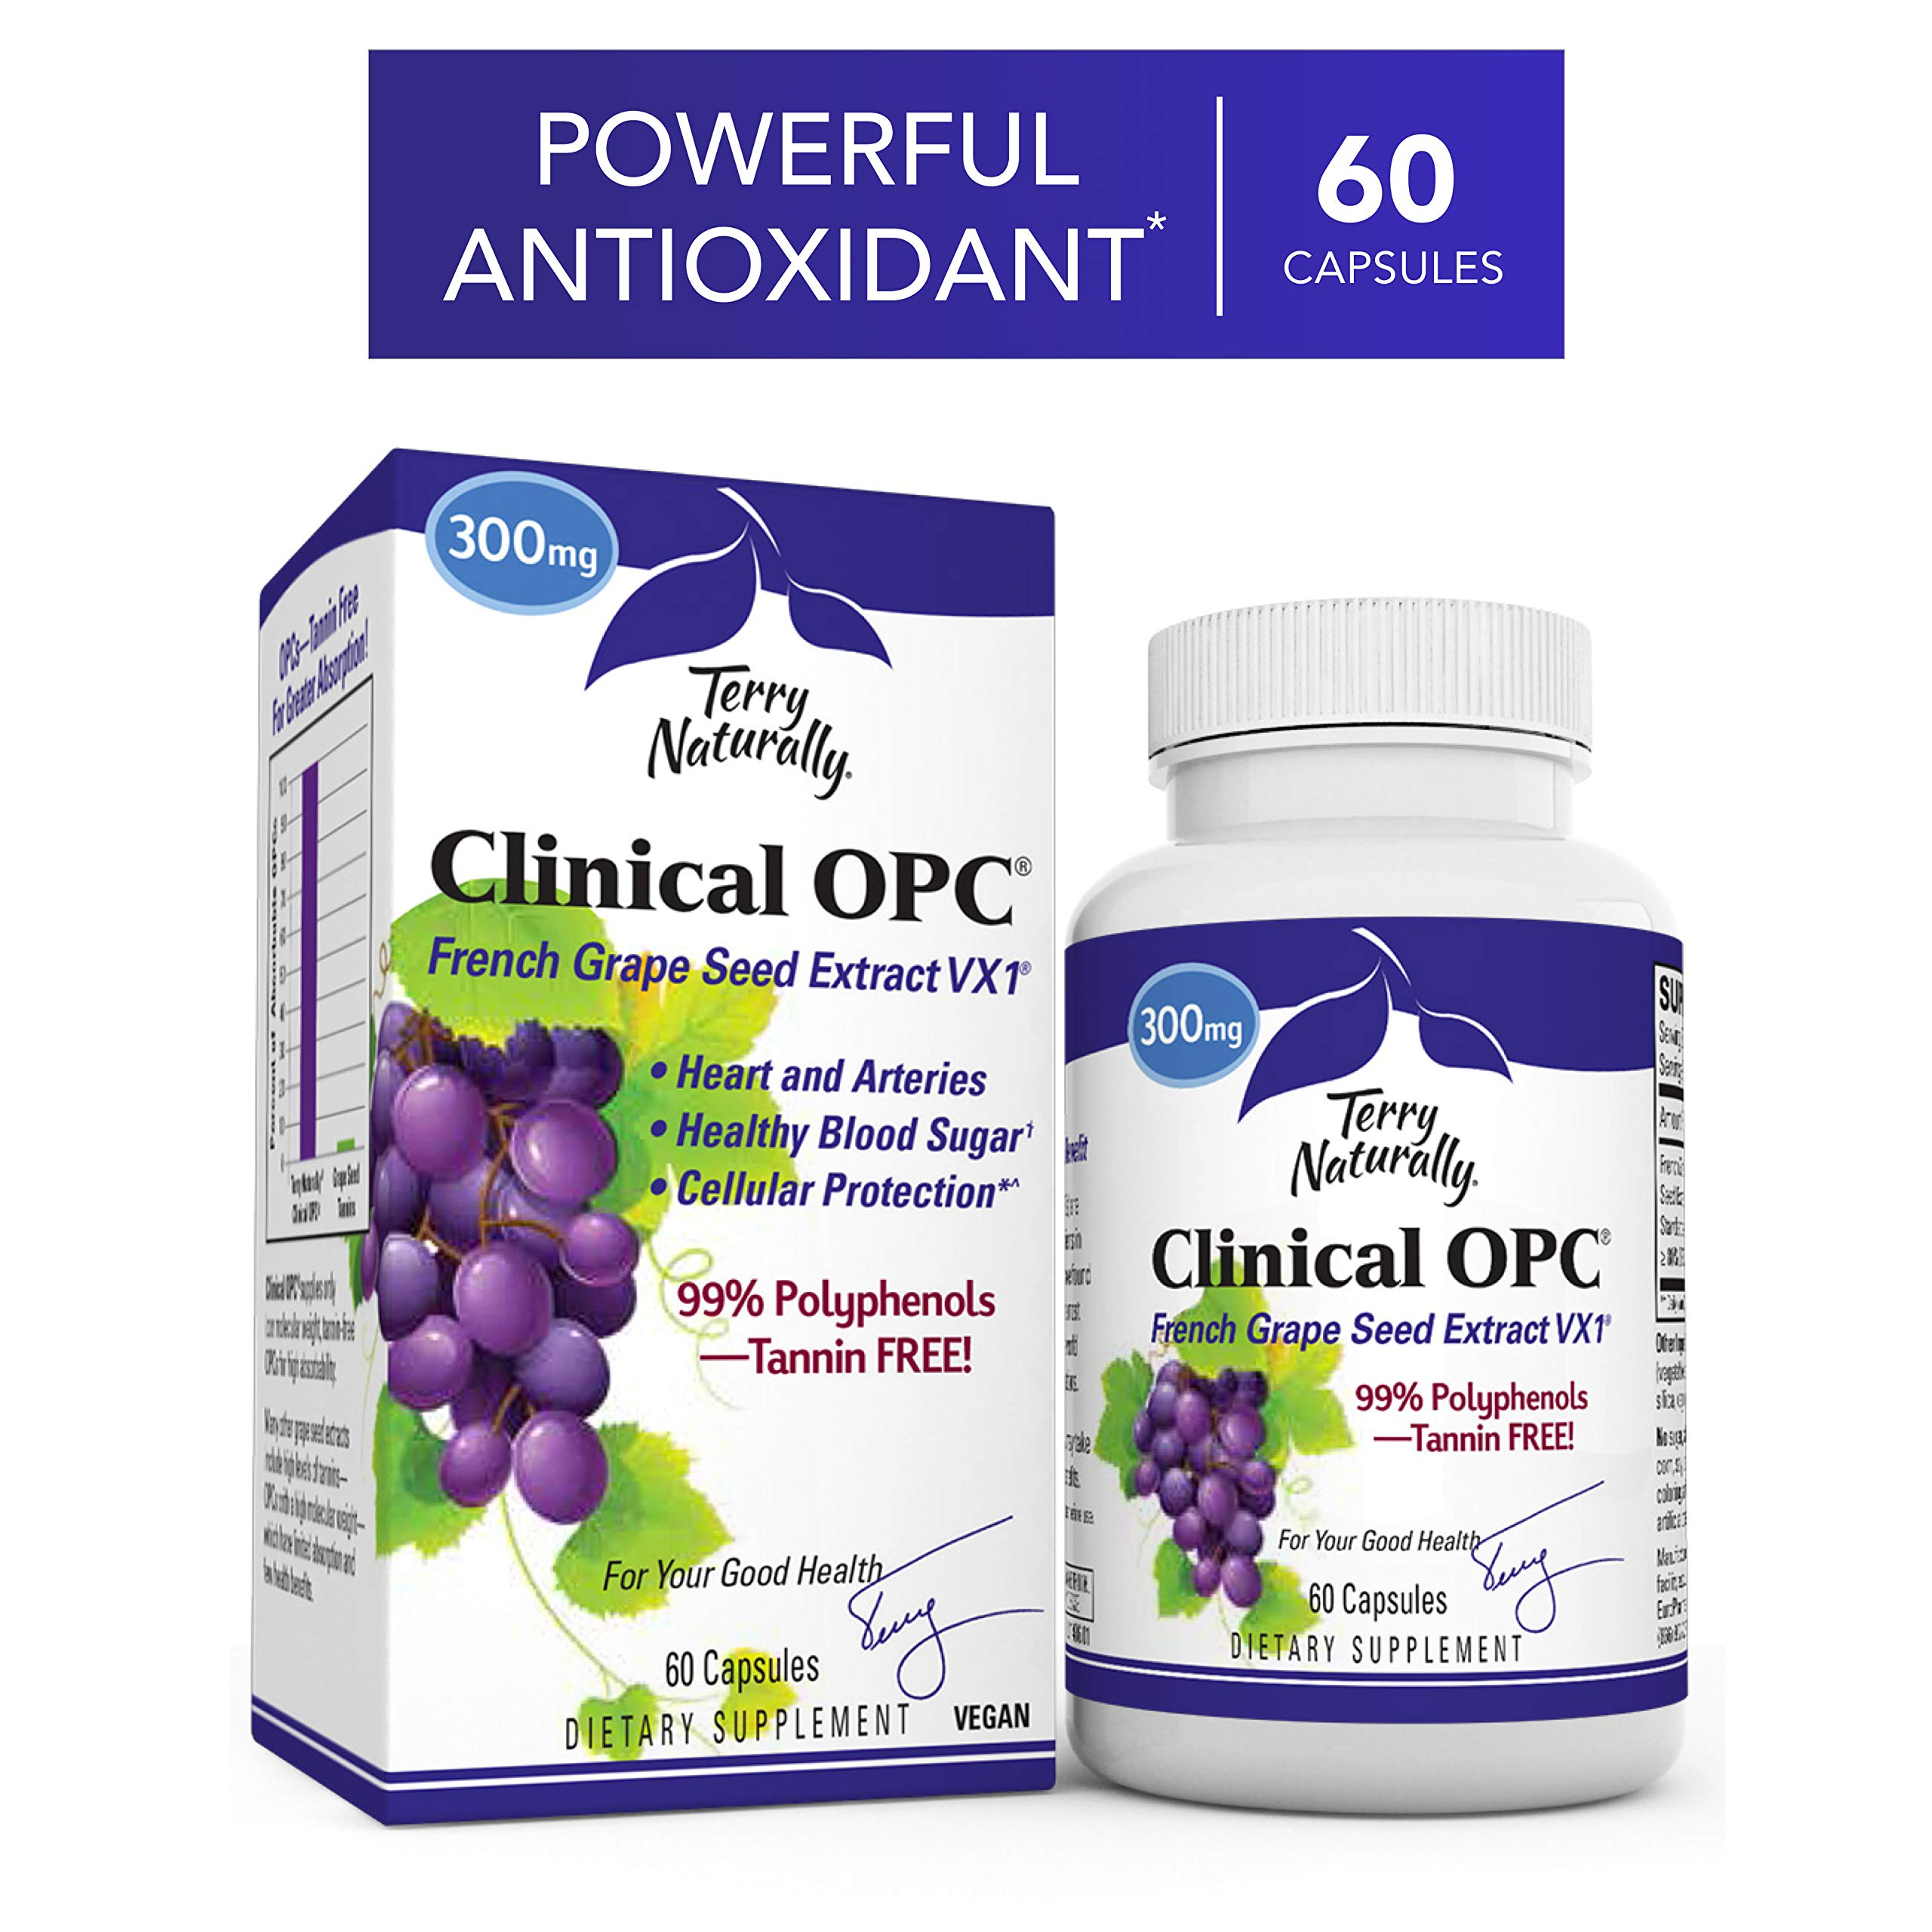 Terry Naturally Clinical OPC 300 mg - 60 Vegan Capsules - French Grape Seed Extract Supplement, Supports Heart & Immune Health, Antioxidant - Non-GMO, Gluten-Free, Kosher - 60 Servings